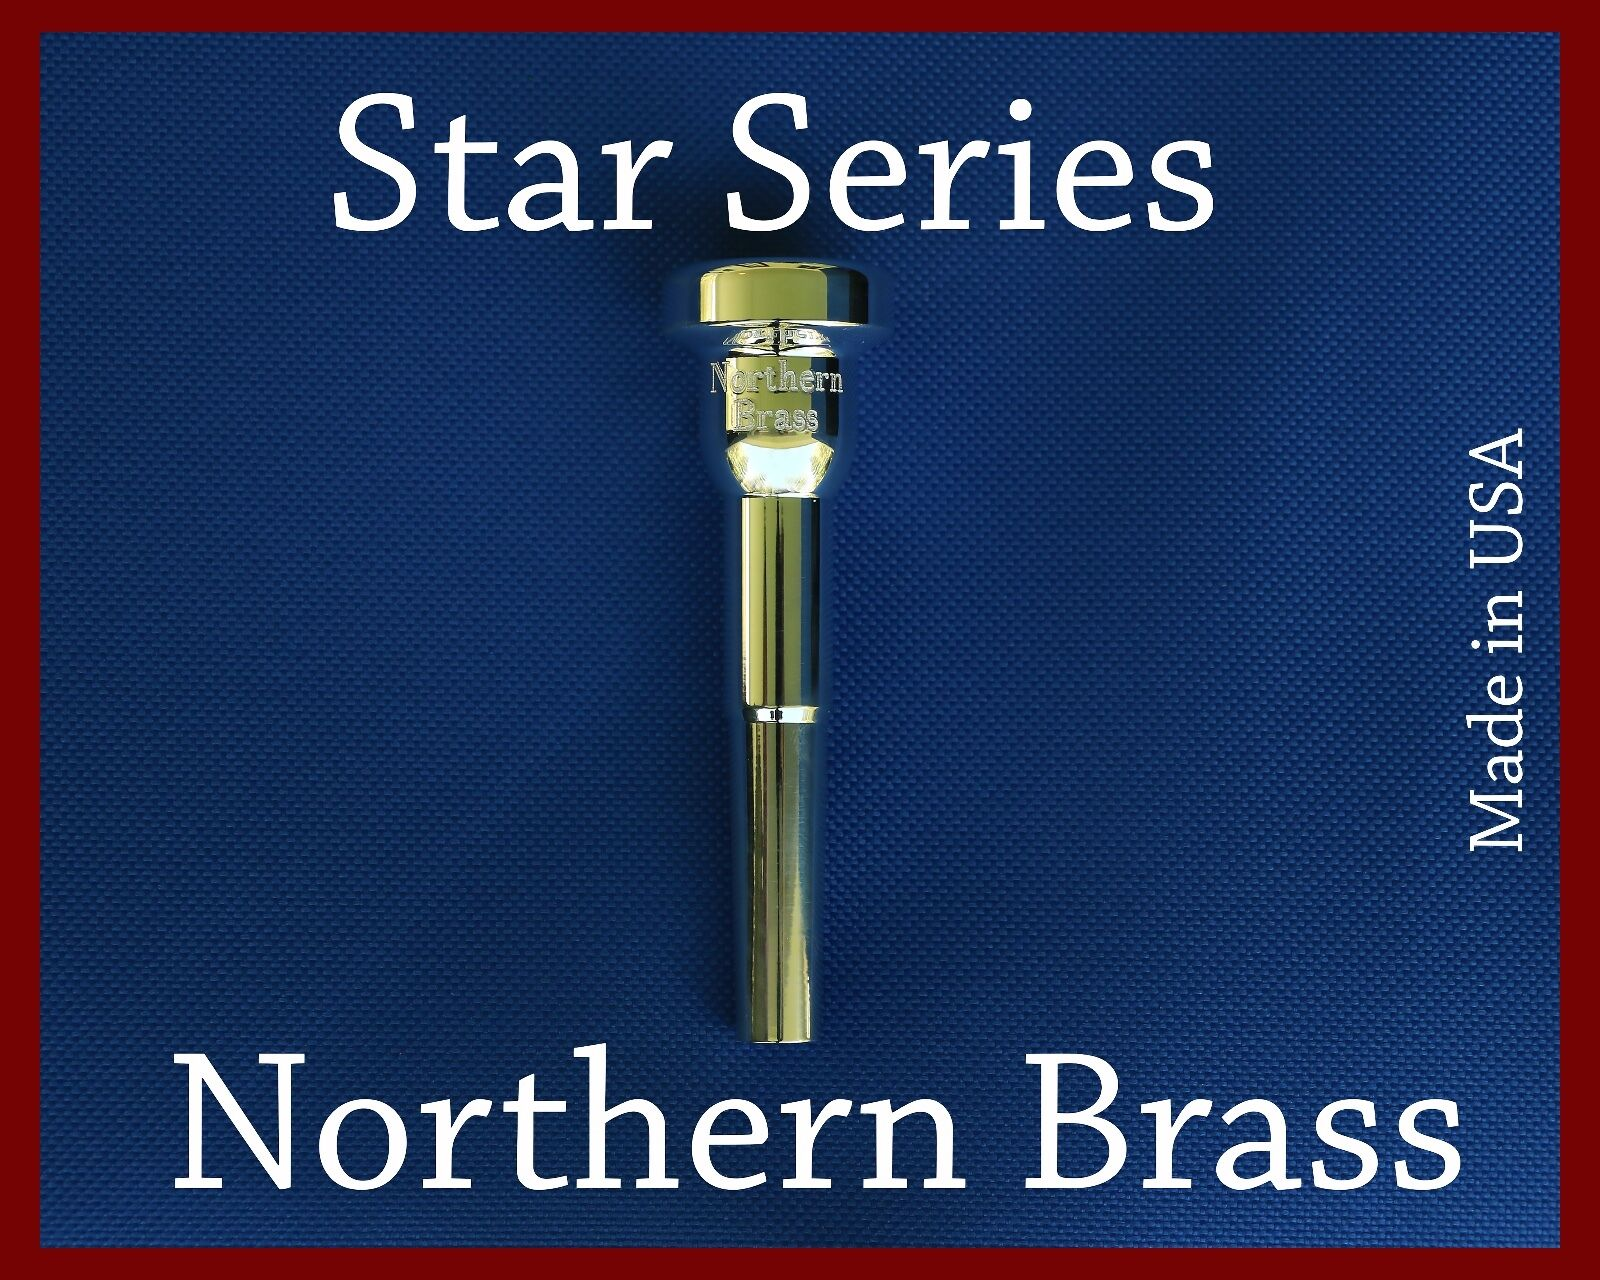 Northern Brass 4-66 3 Star Trumpet Mouthpiece By GR